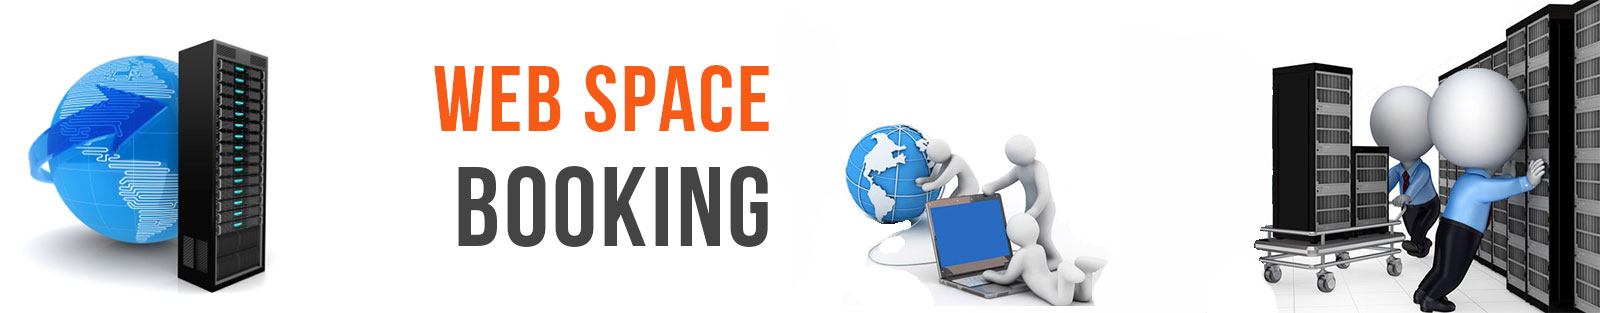 Web Space Booking